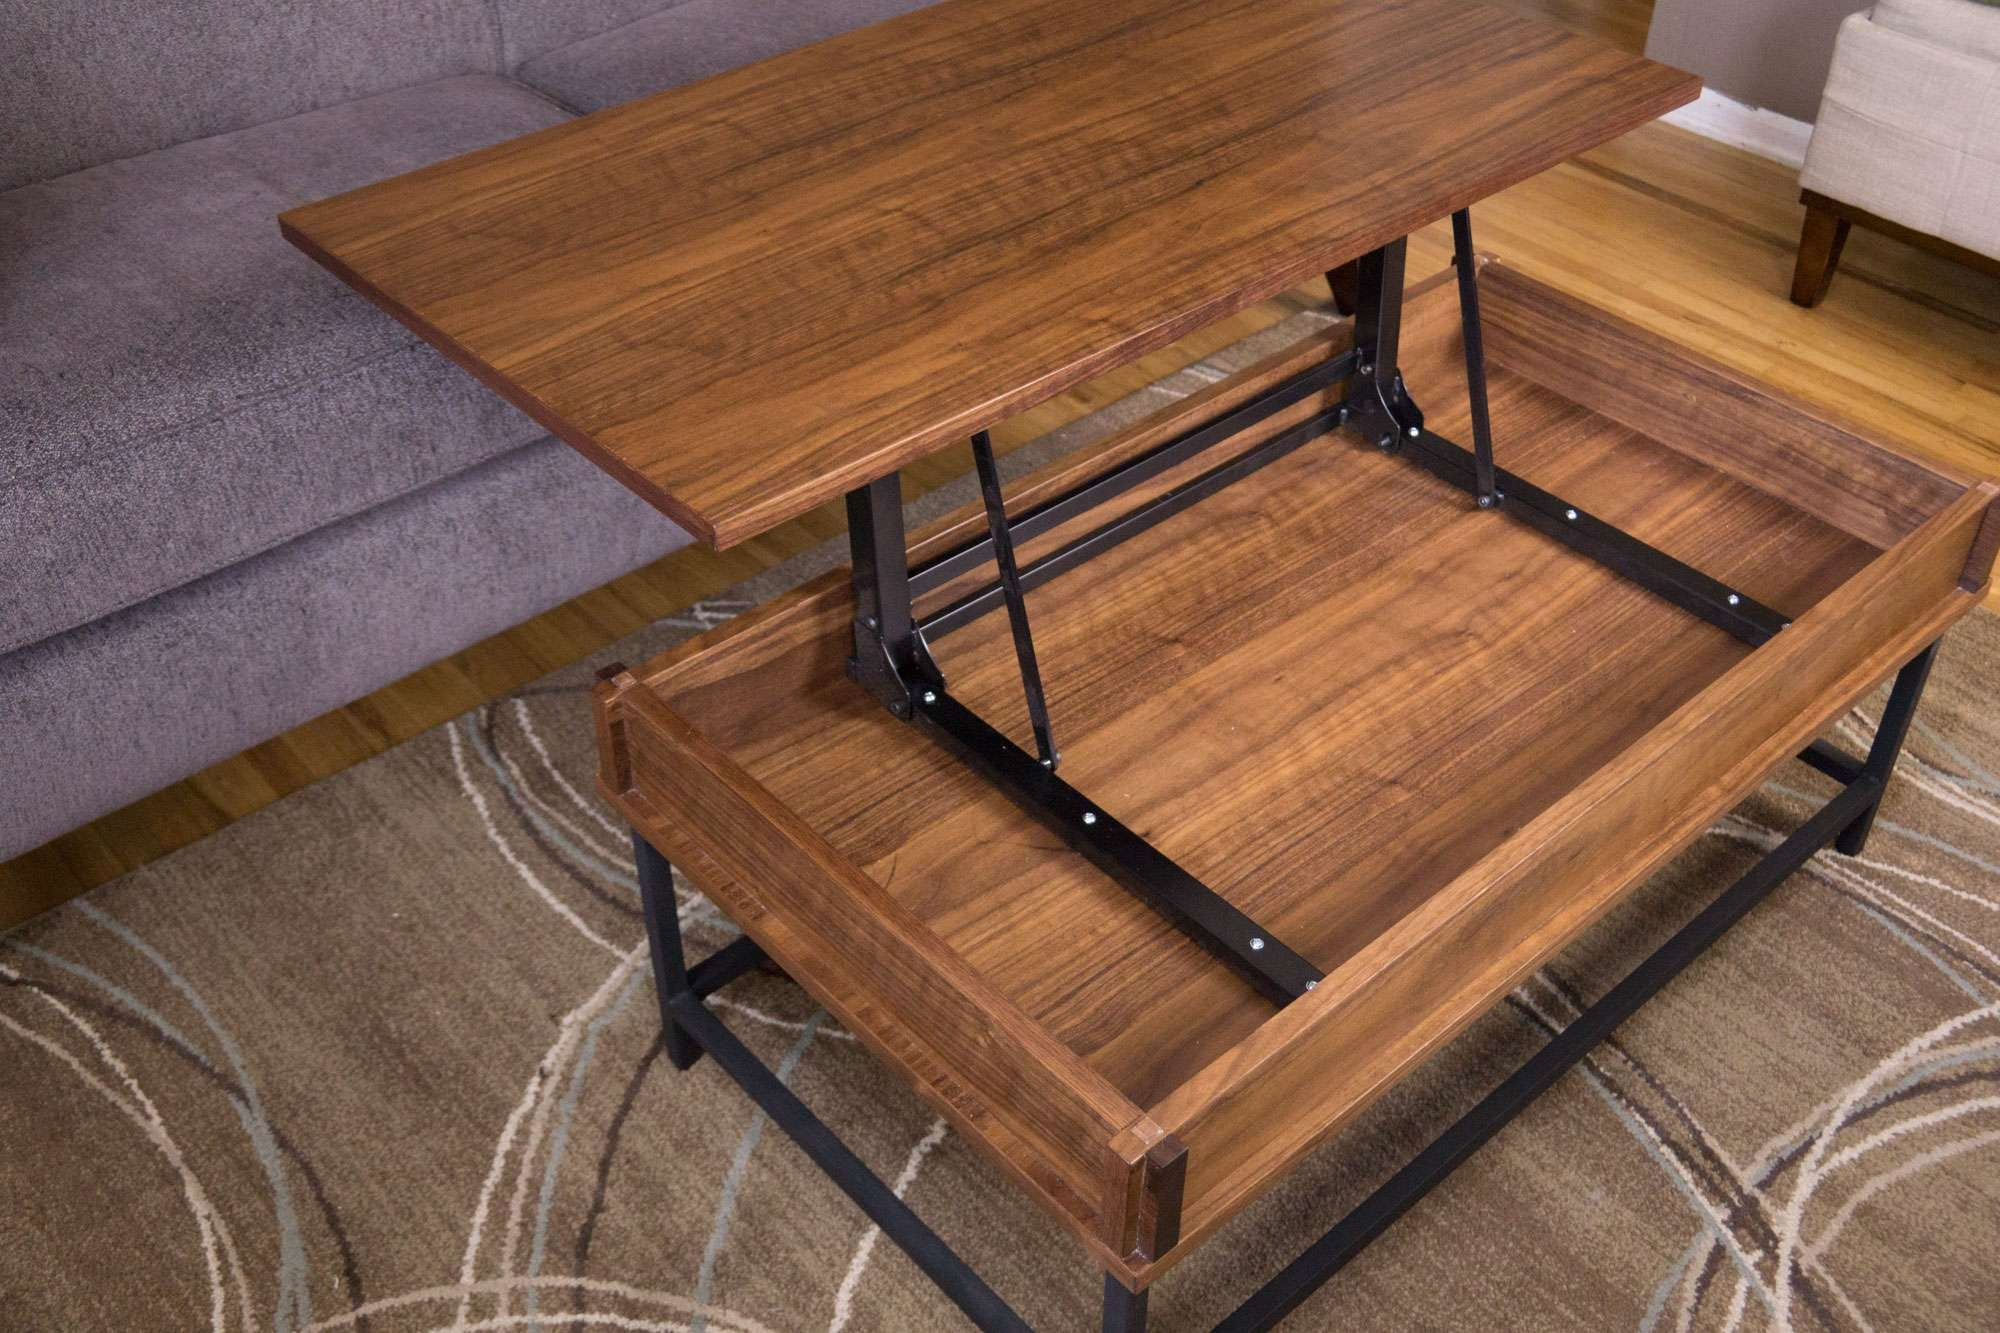 Hinged Top Coffee Table Plans • Coffee Table Design Throughout 2017 Hinged Top Coffee Tables (Gallery 15 of 20)